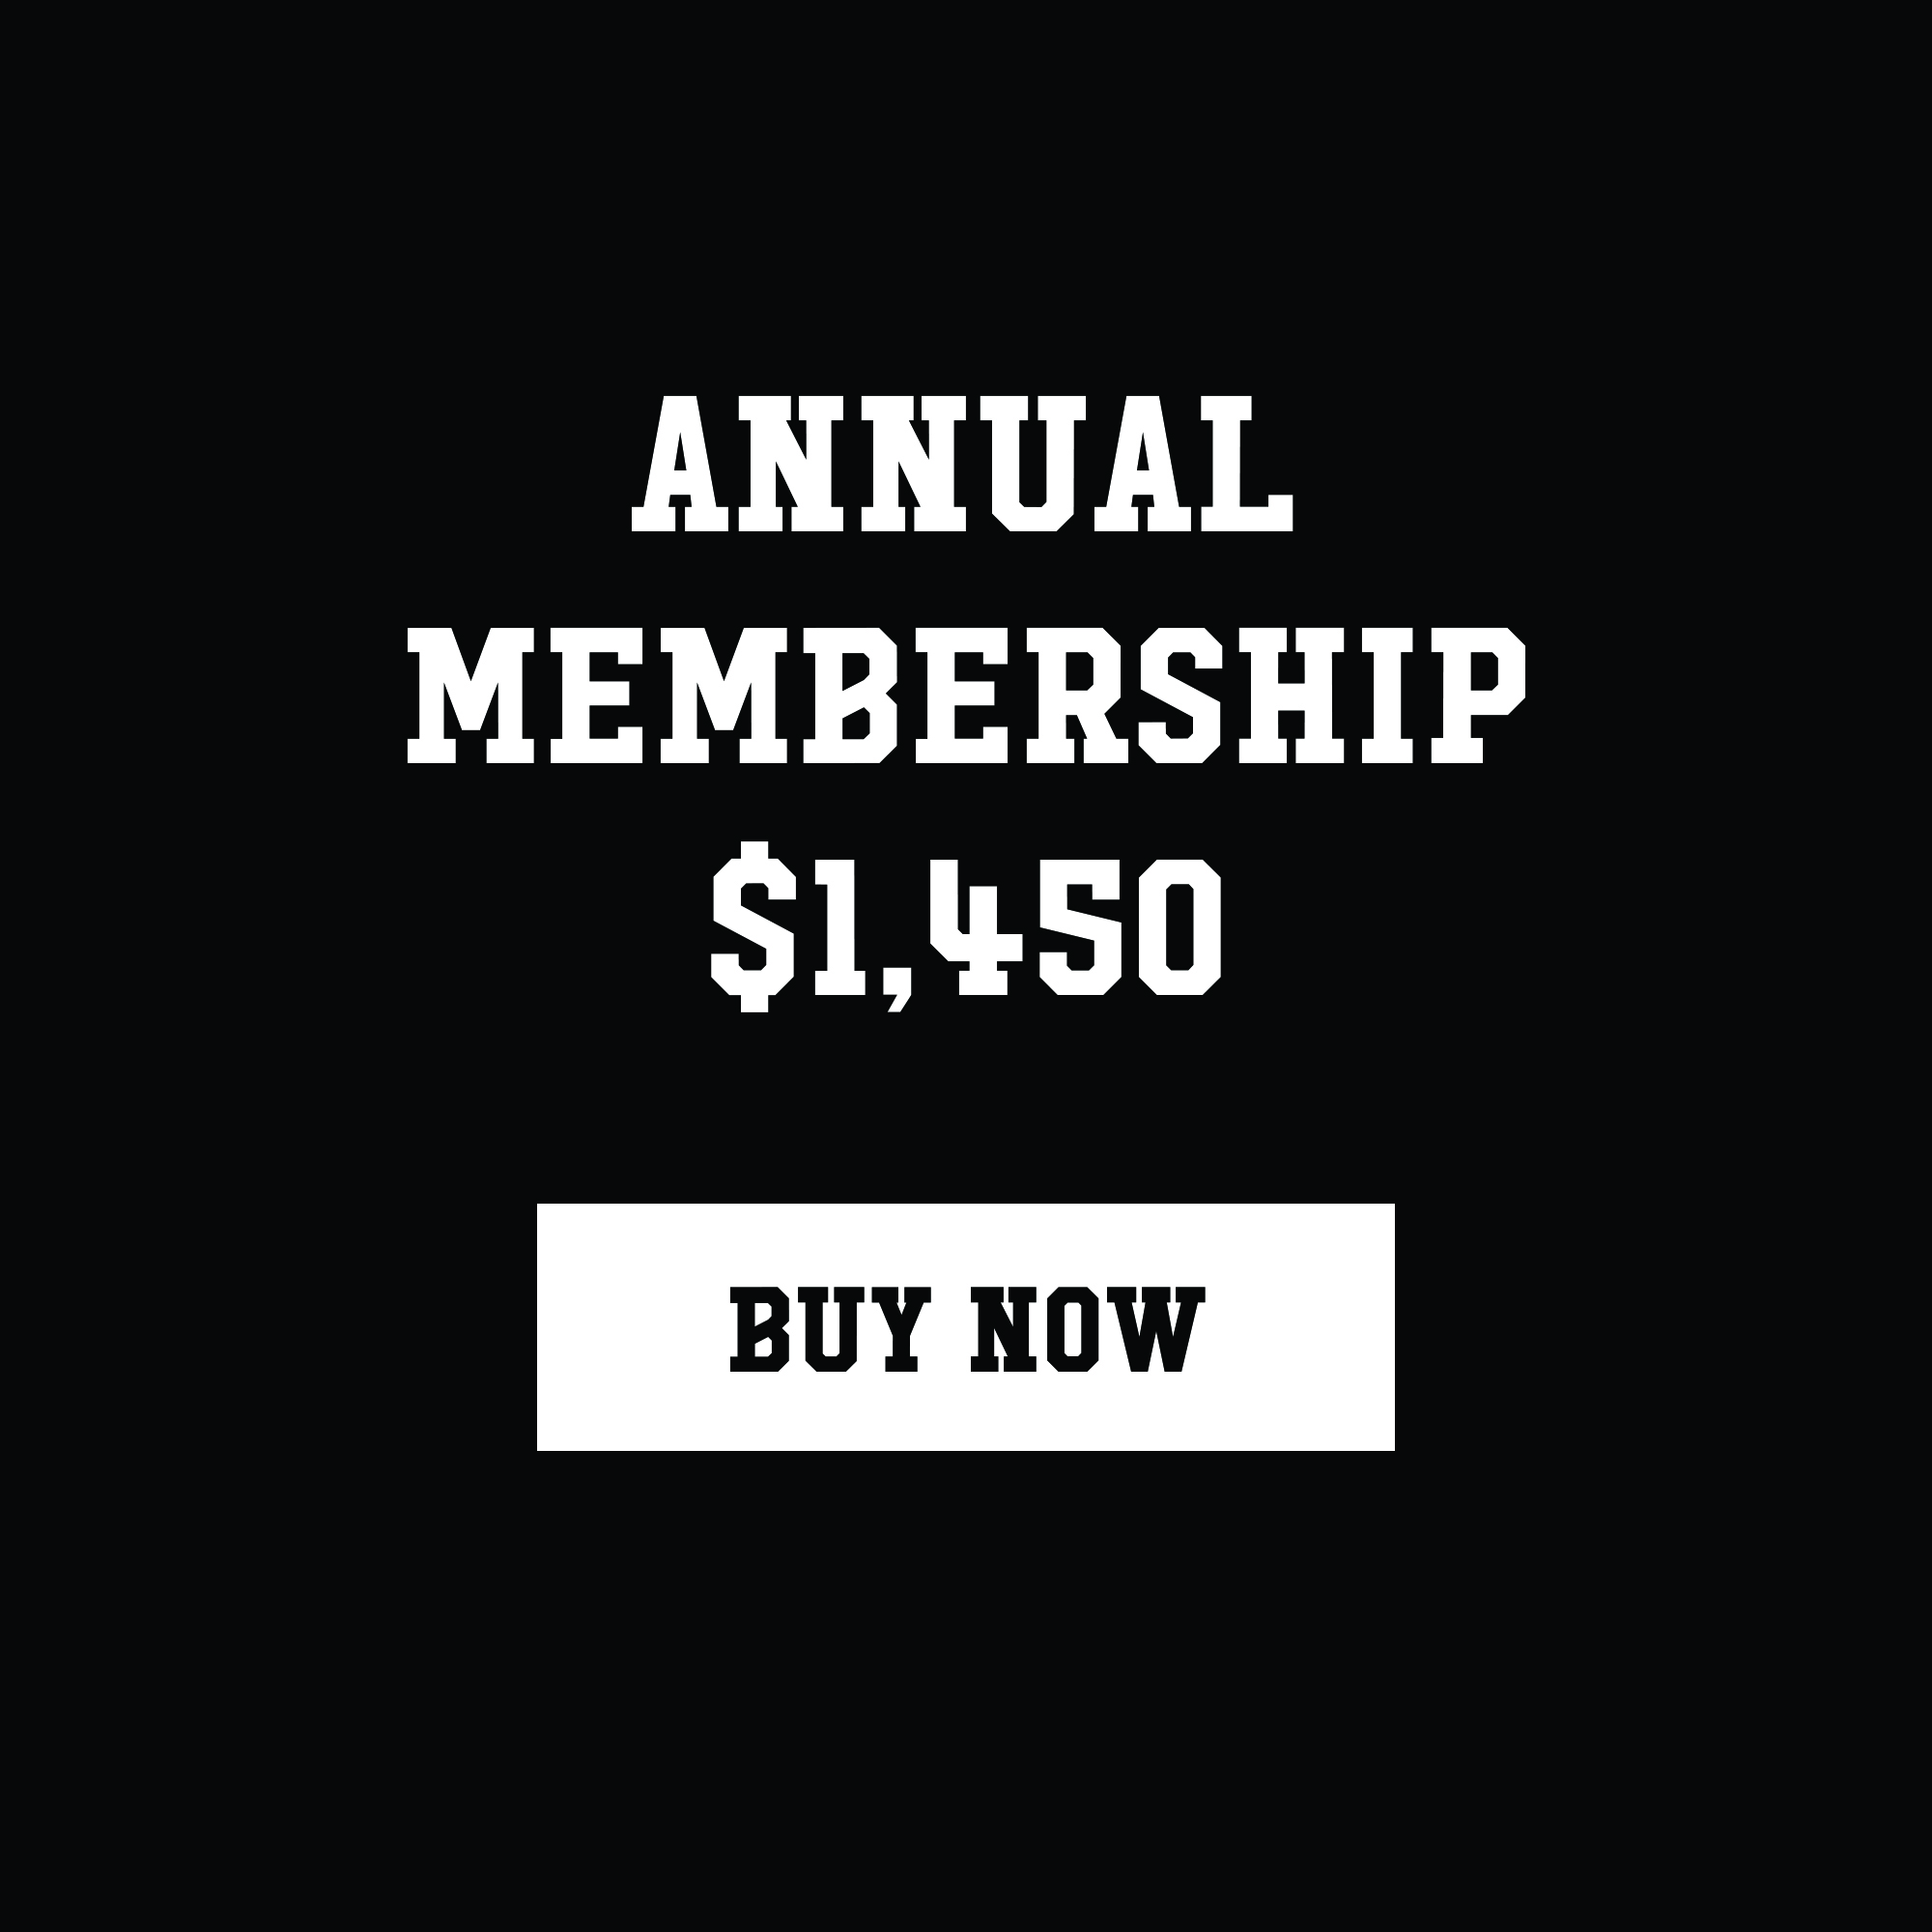 ($120 a month) Membership is paid upfront in full for the full year